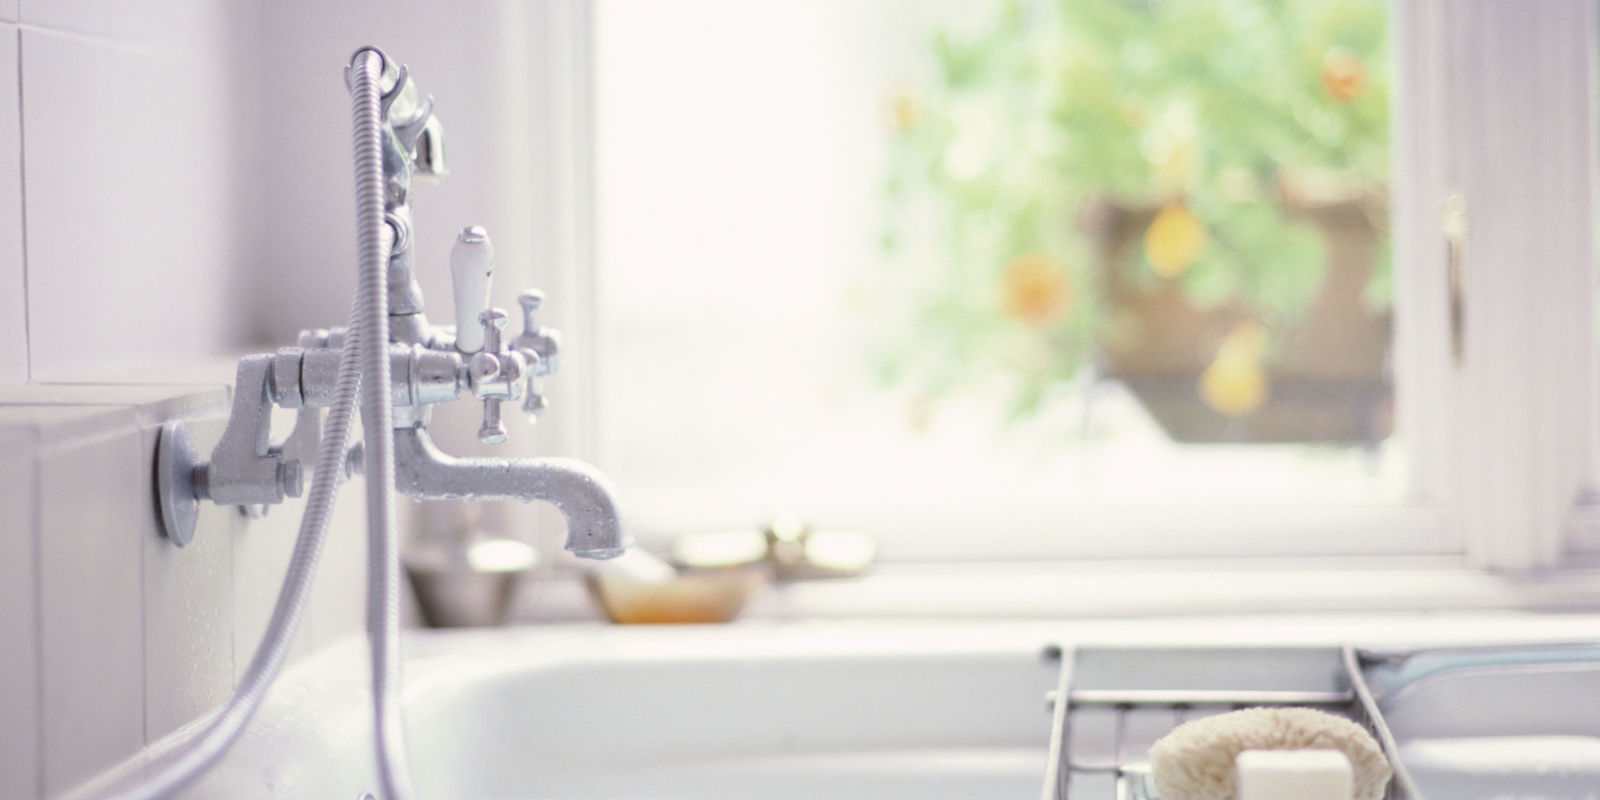 Cleaning Your Bathroom Bathroom Cleaning Mistakes